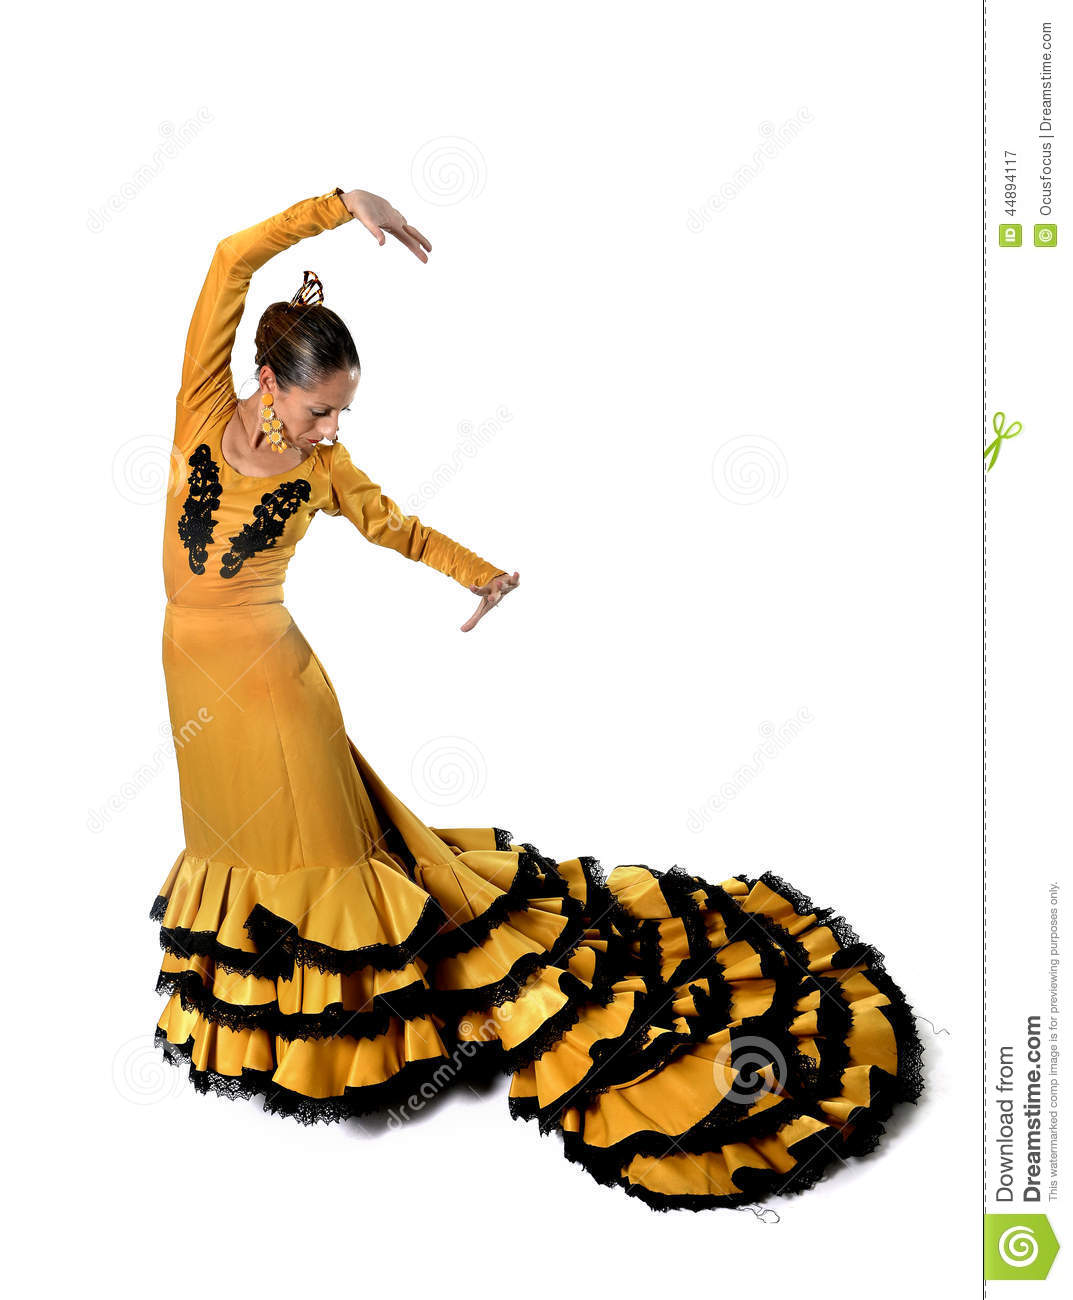 ce7d5a6a8e1b Young Spanish woman dancing flamenco in typical folk tailed gown dress